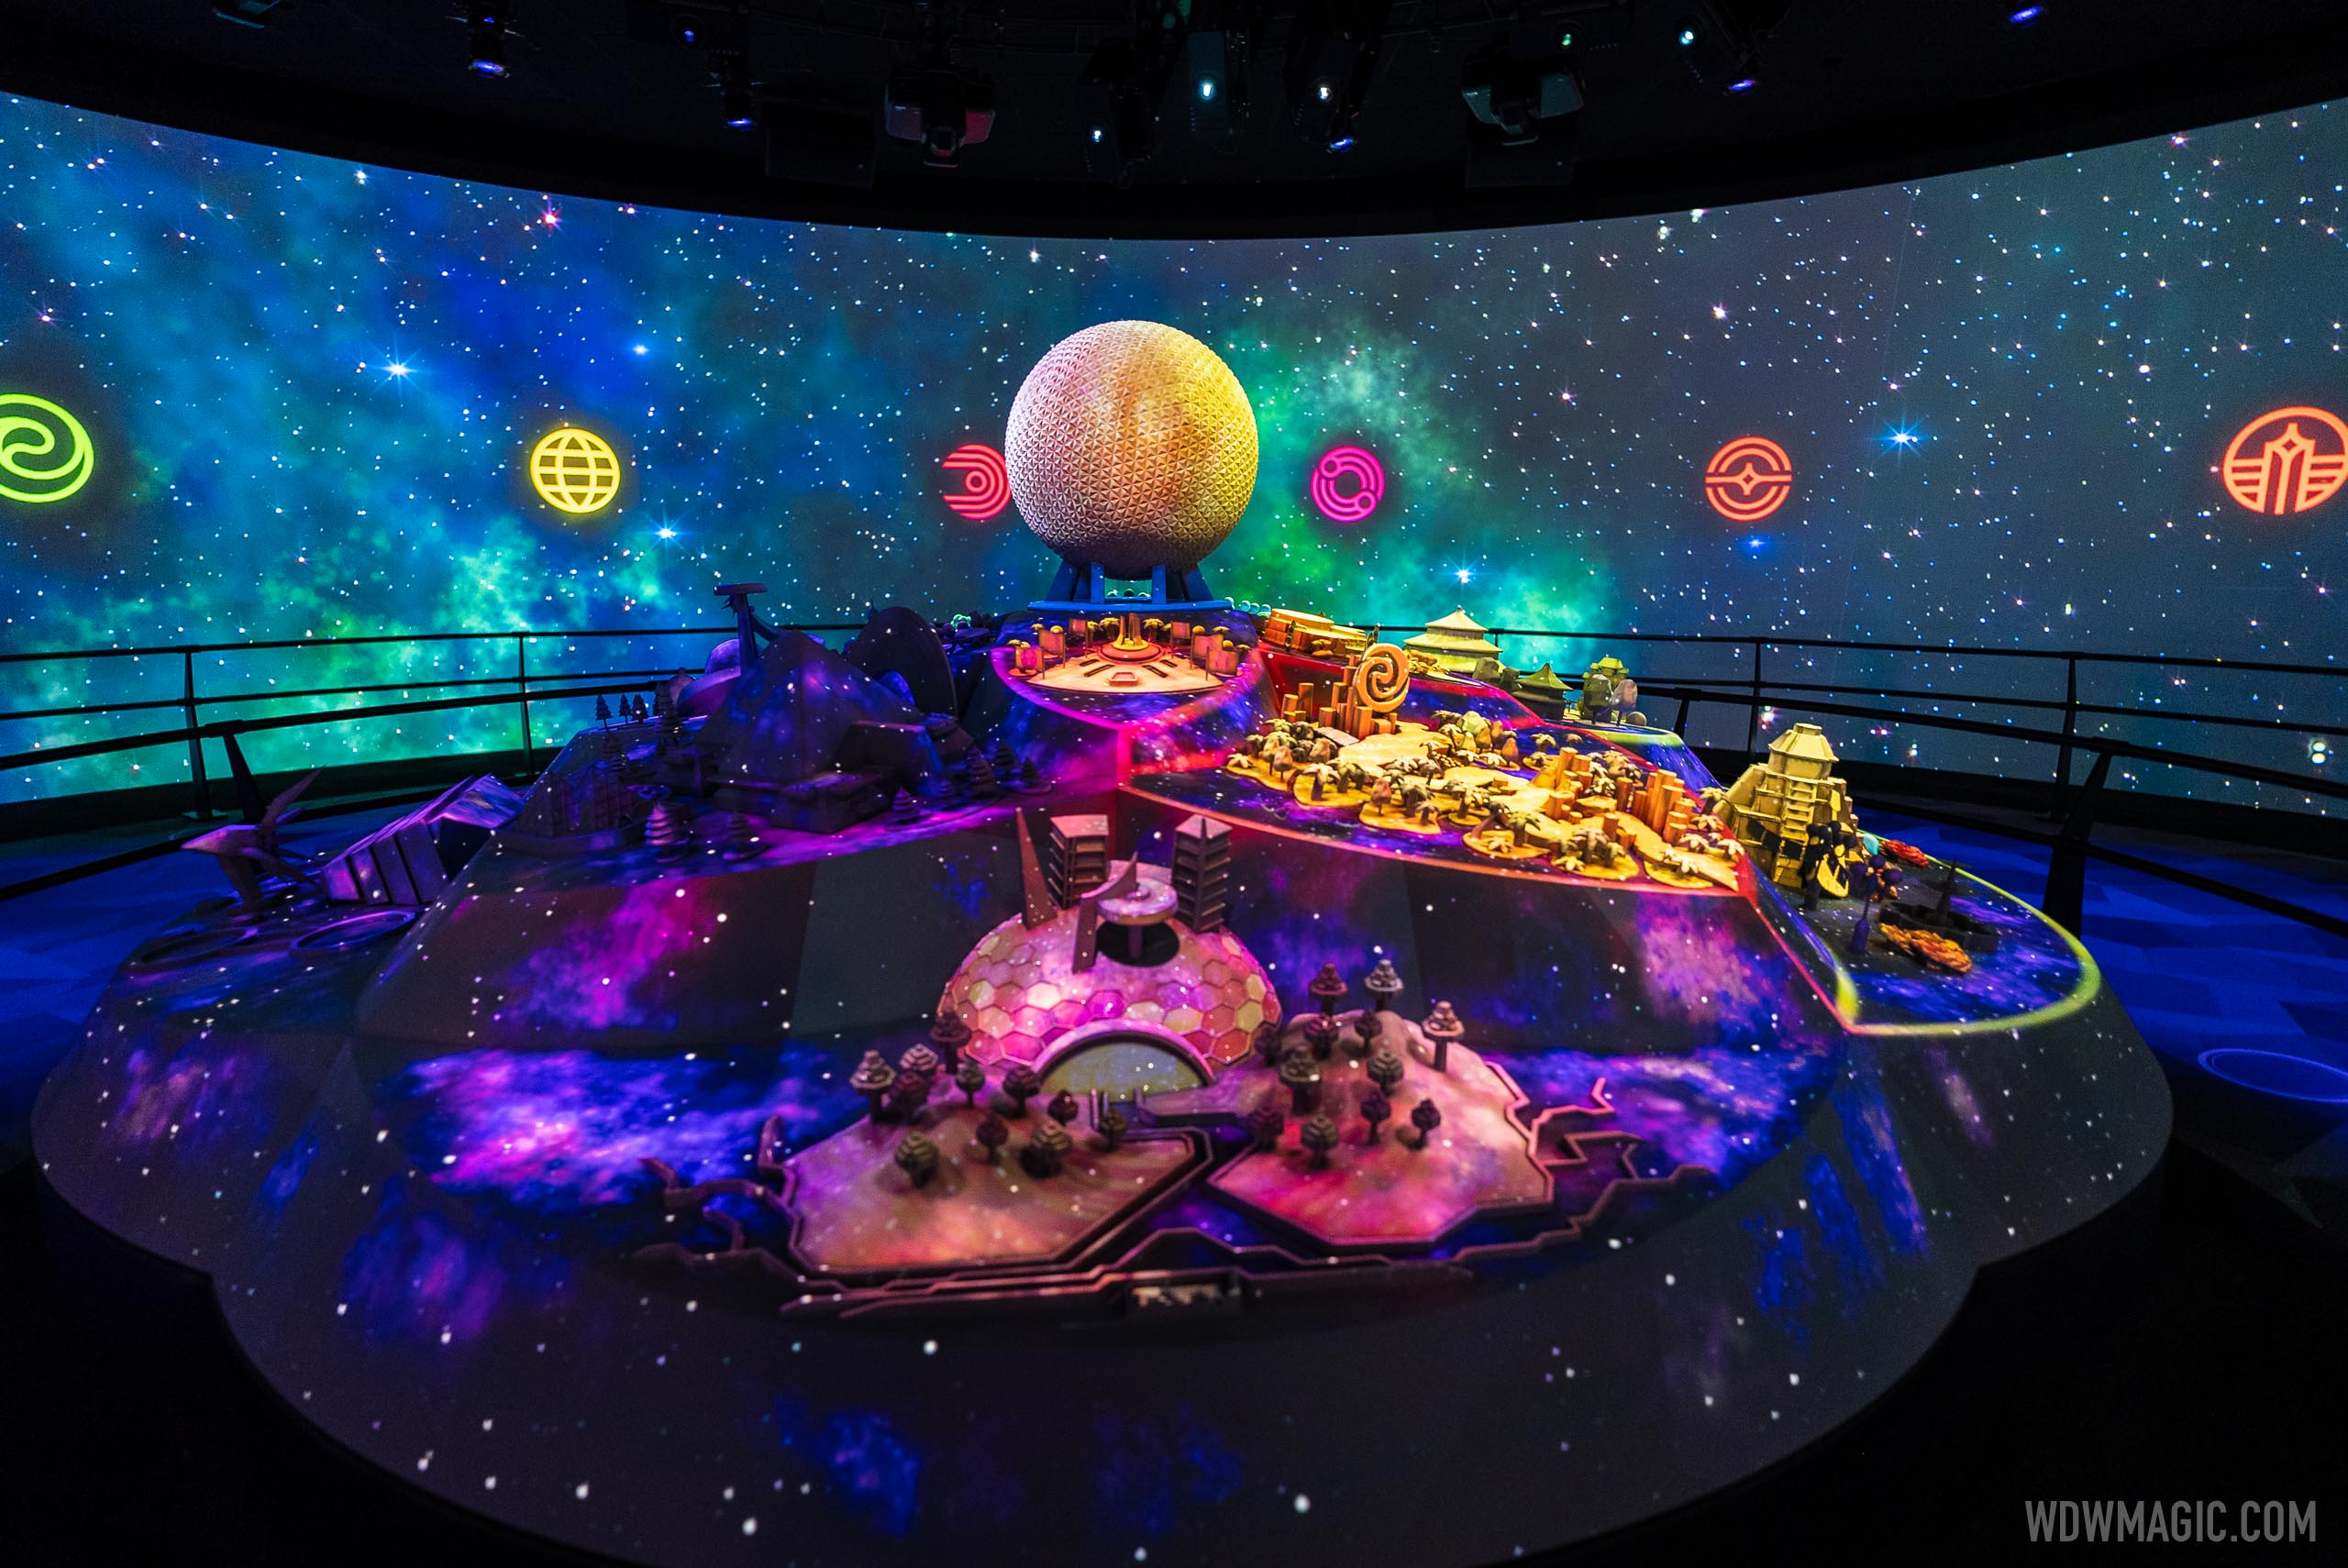 D23 Fantastic Worlds Celebration will include a panel on EPCOT